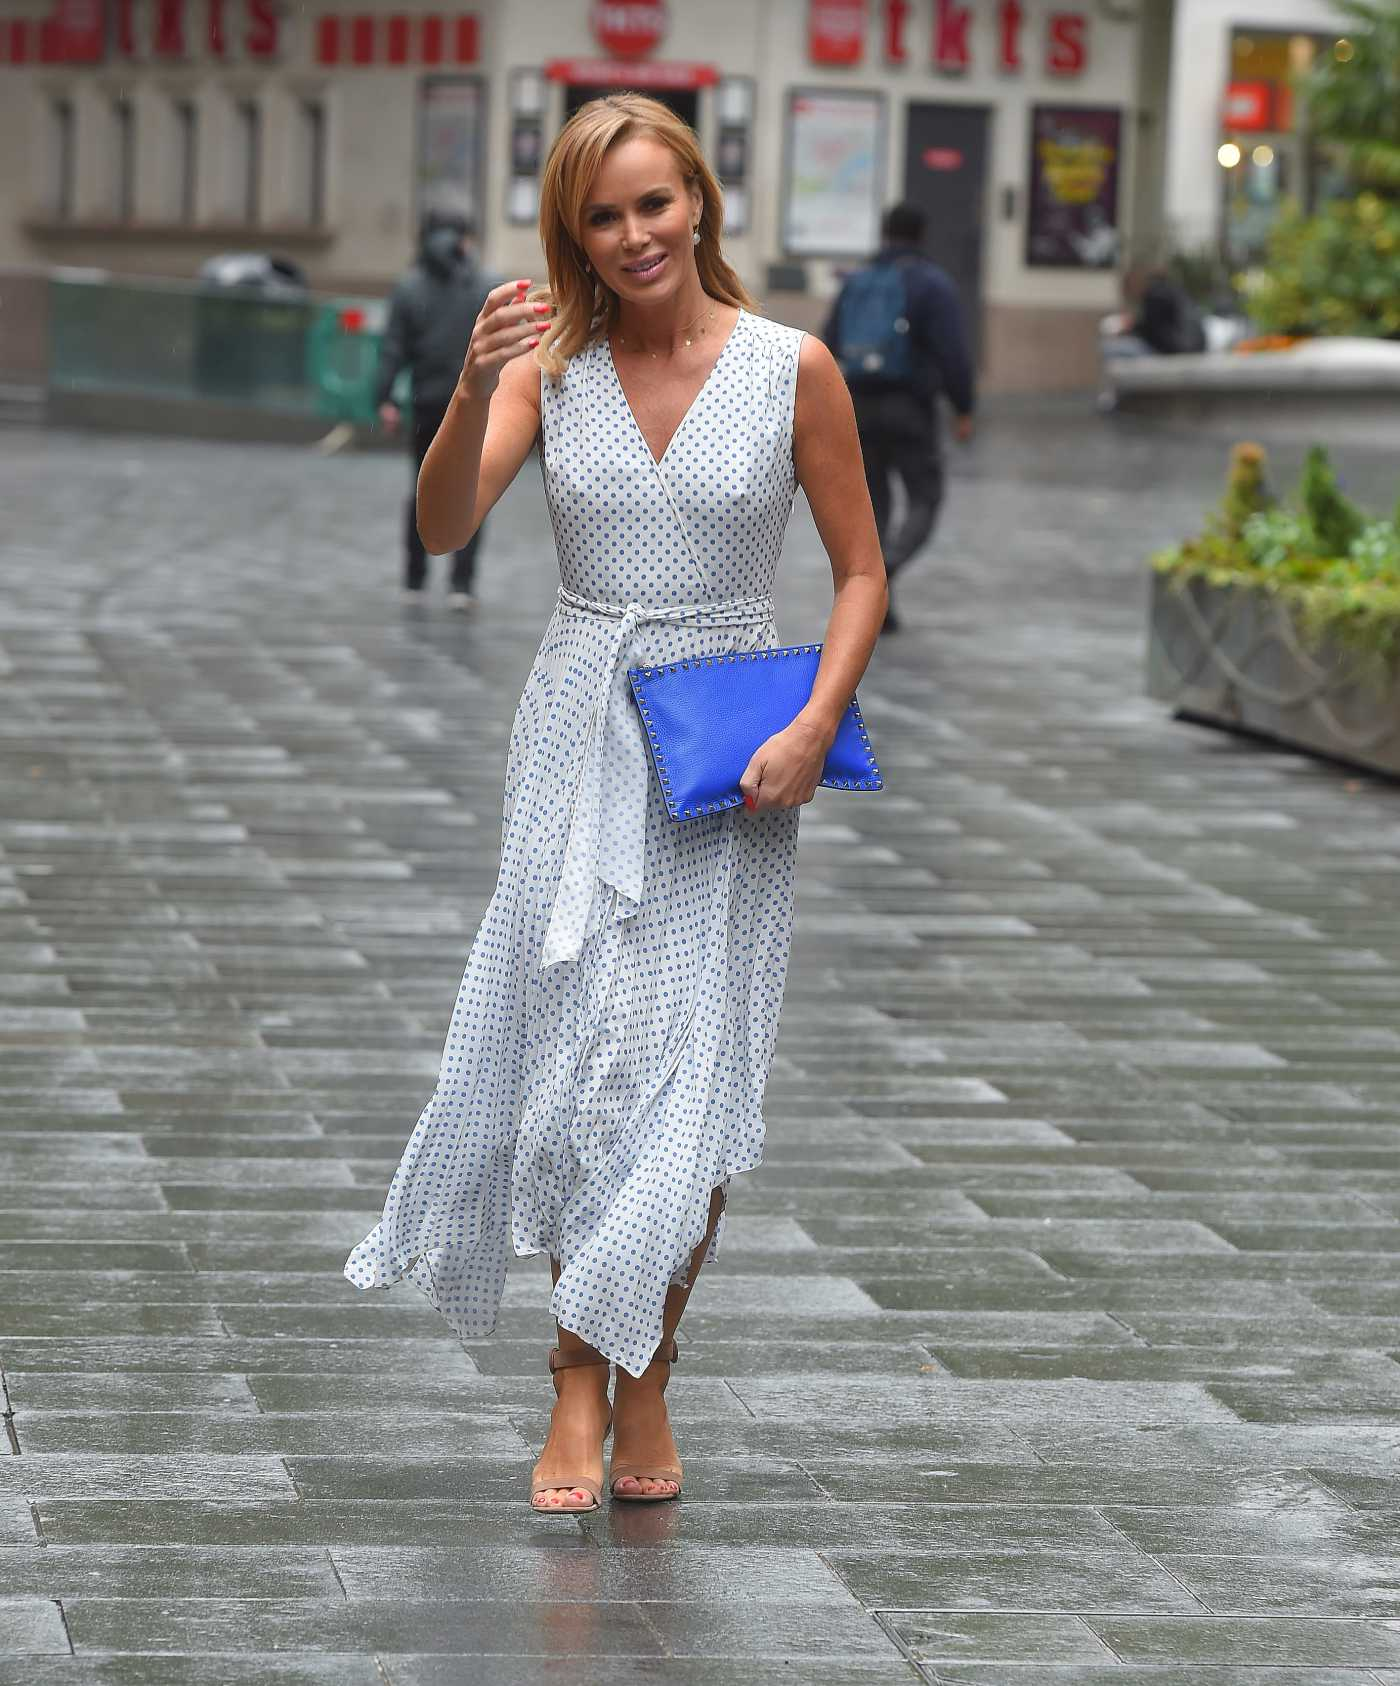 Amanda Holden in a White Polka Dot Dress Arrives at the Global Radio Studios in London 06/18/2020